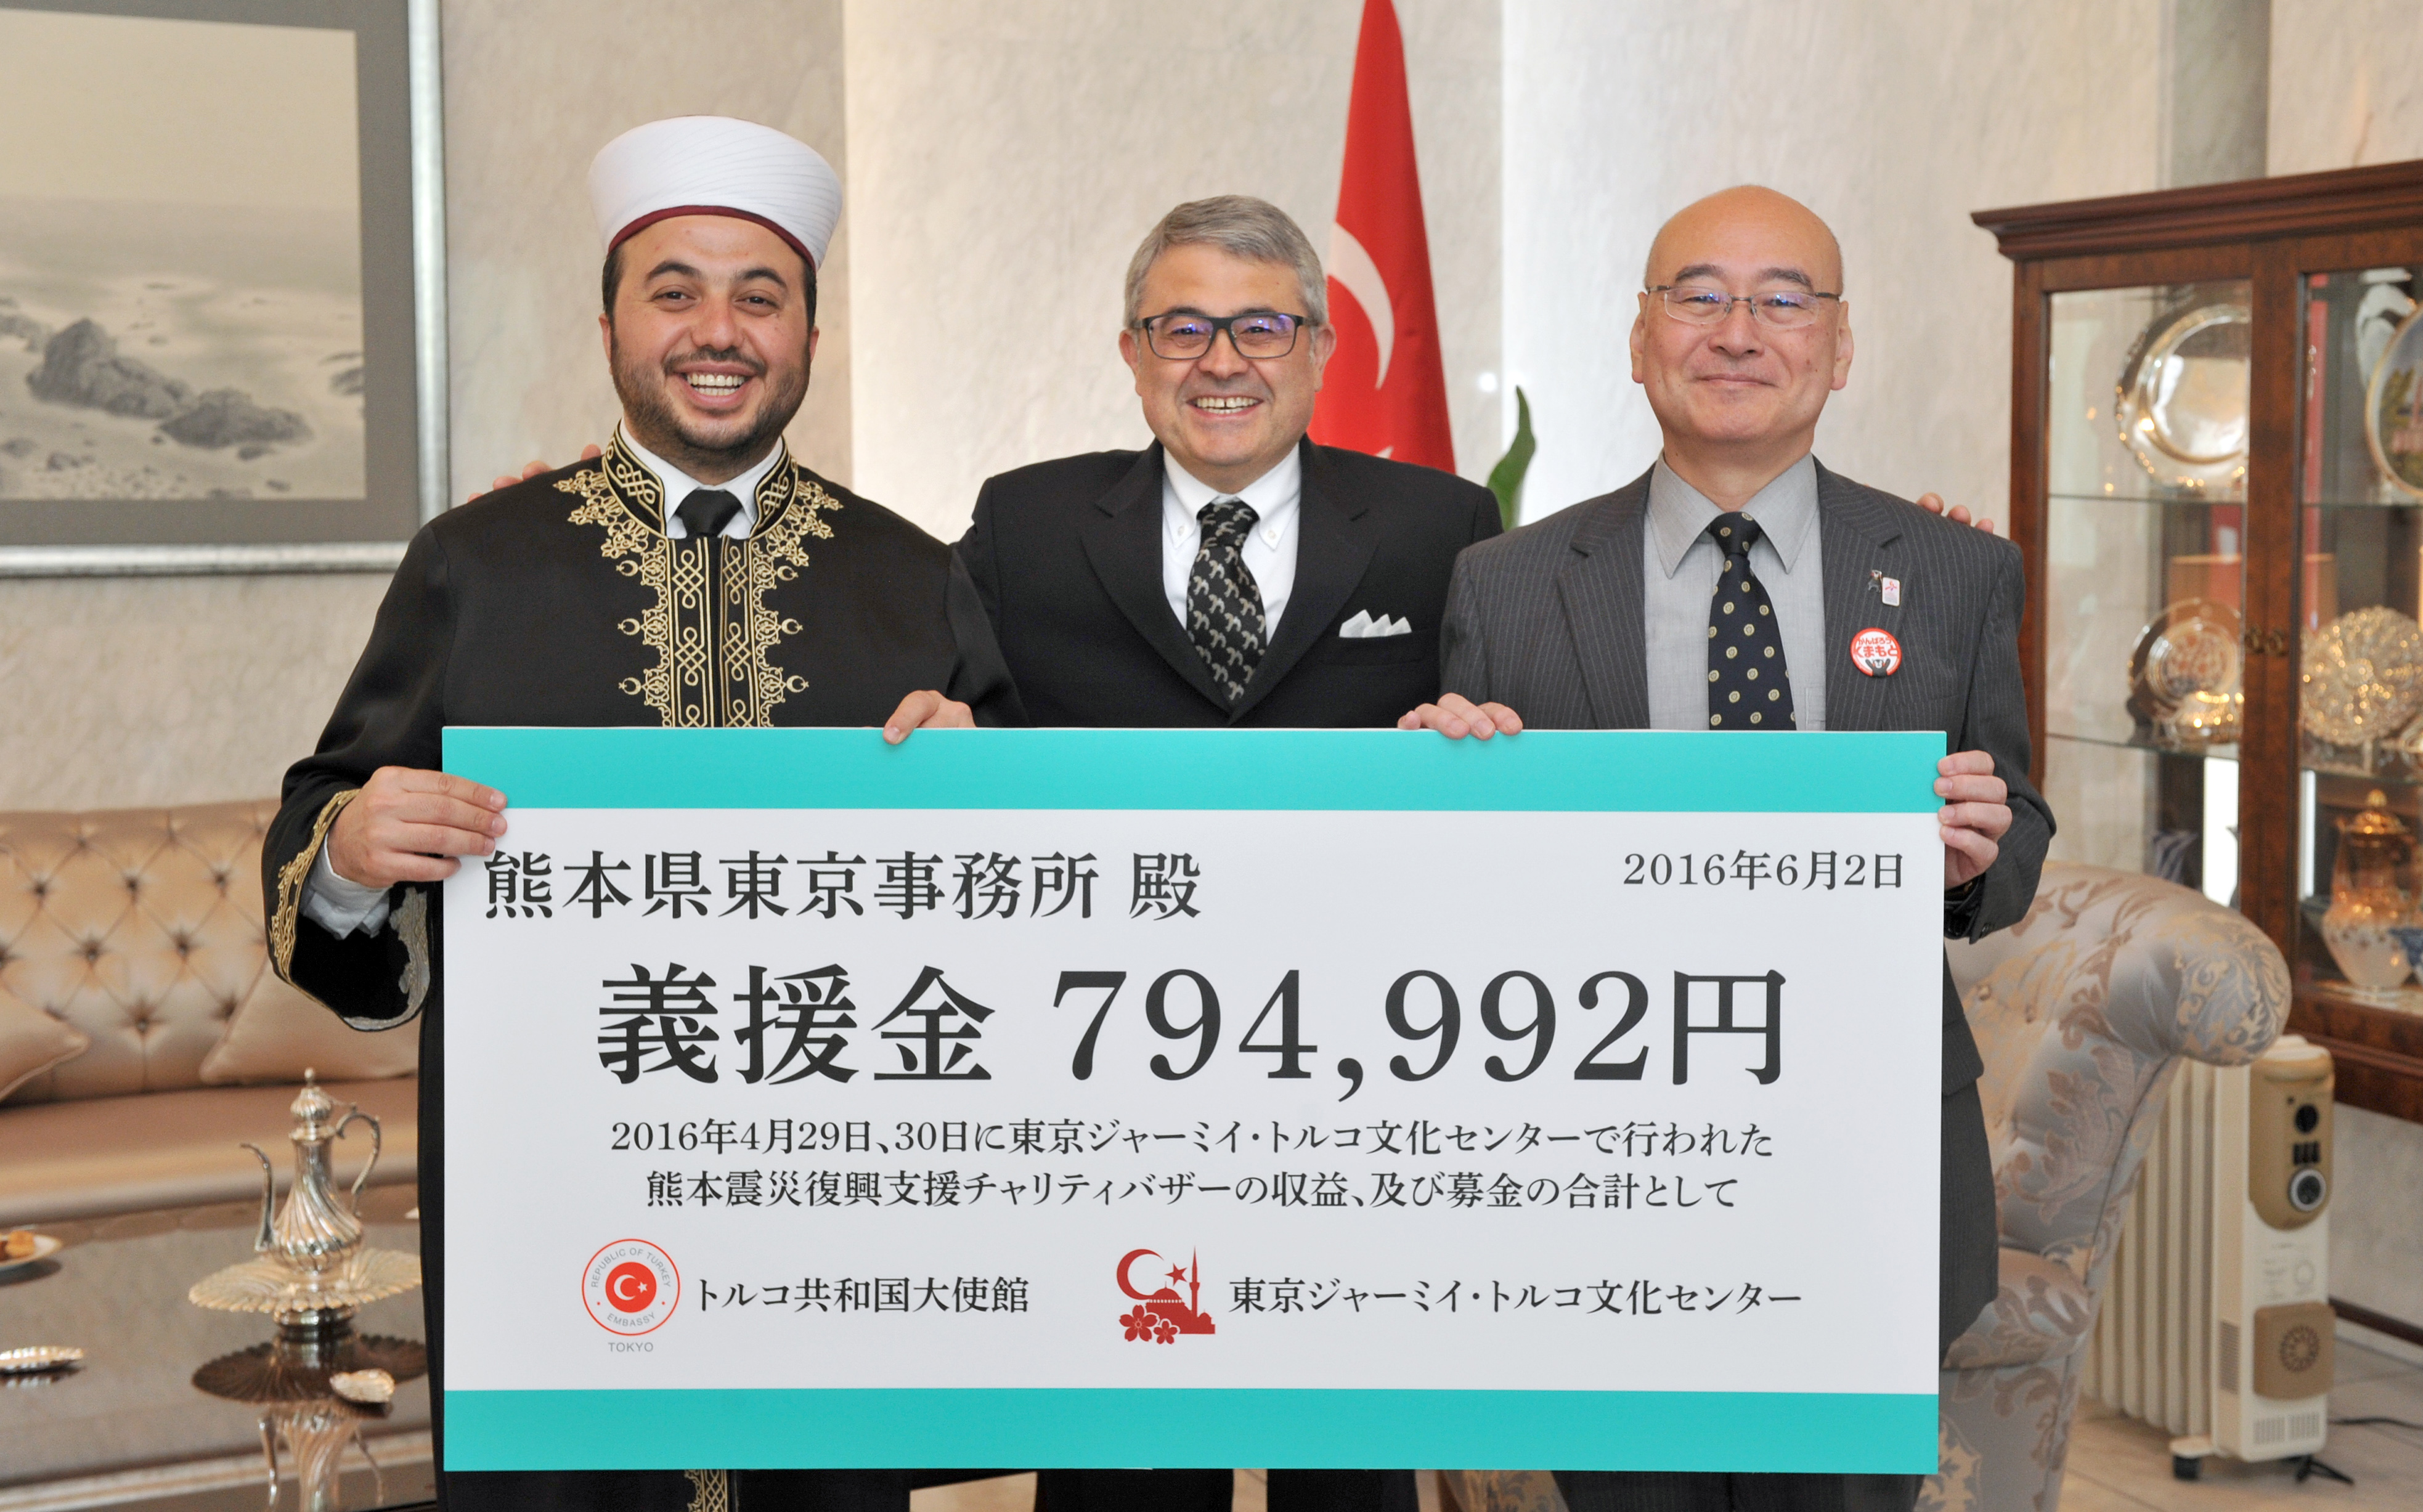 Imam and Director of the Tokyo Camii and Turkish Culture Center Muhammed Rasit Alas (left) and Junichi Watanabe (right), director general of the Tokyo office of the Kumamoto Prefectural Government, are joined by Turkish Ambassador Ahmet Bulent Meric as the center presents the prefecture with a ¥794,992 donation, raised from the proceeds of a Kumamoto earthquake reconstruction charity bazaar, at the Turkish Embassy in Tokyo on June 2. | YOSHIAKI MIURA